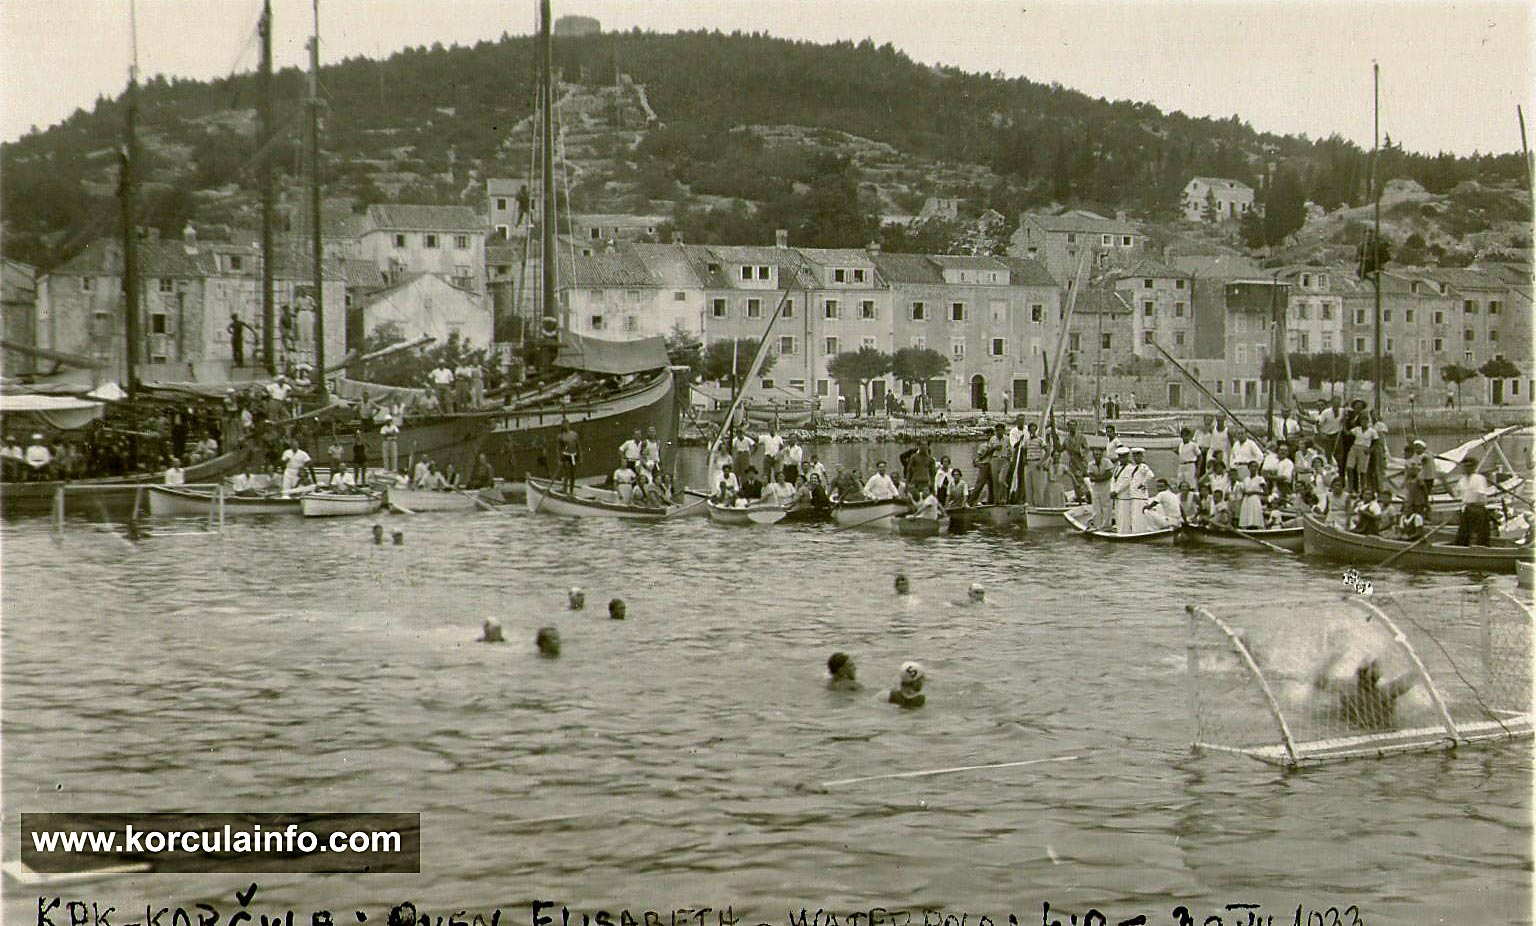 Water Polo match KPK vs HMS Queen Elizabeth in Korcula in 1933 Water Polo match KPK vs HMS Queen Elizabeth in Korcula - 30.07.1933